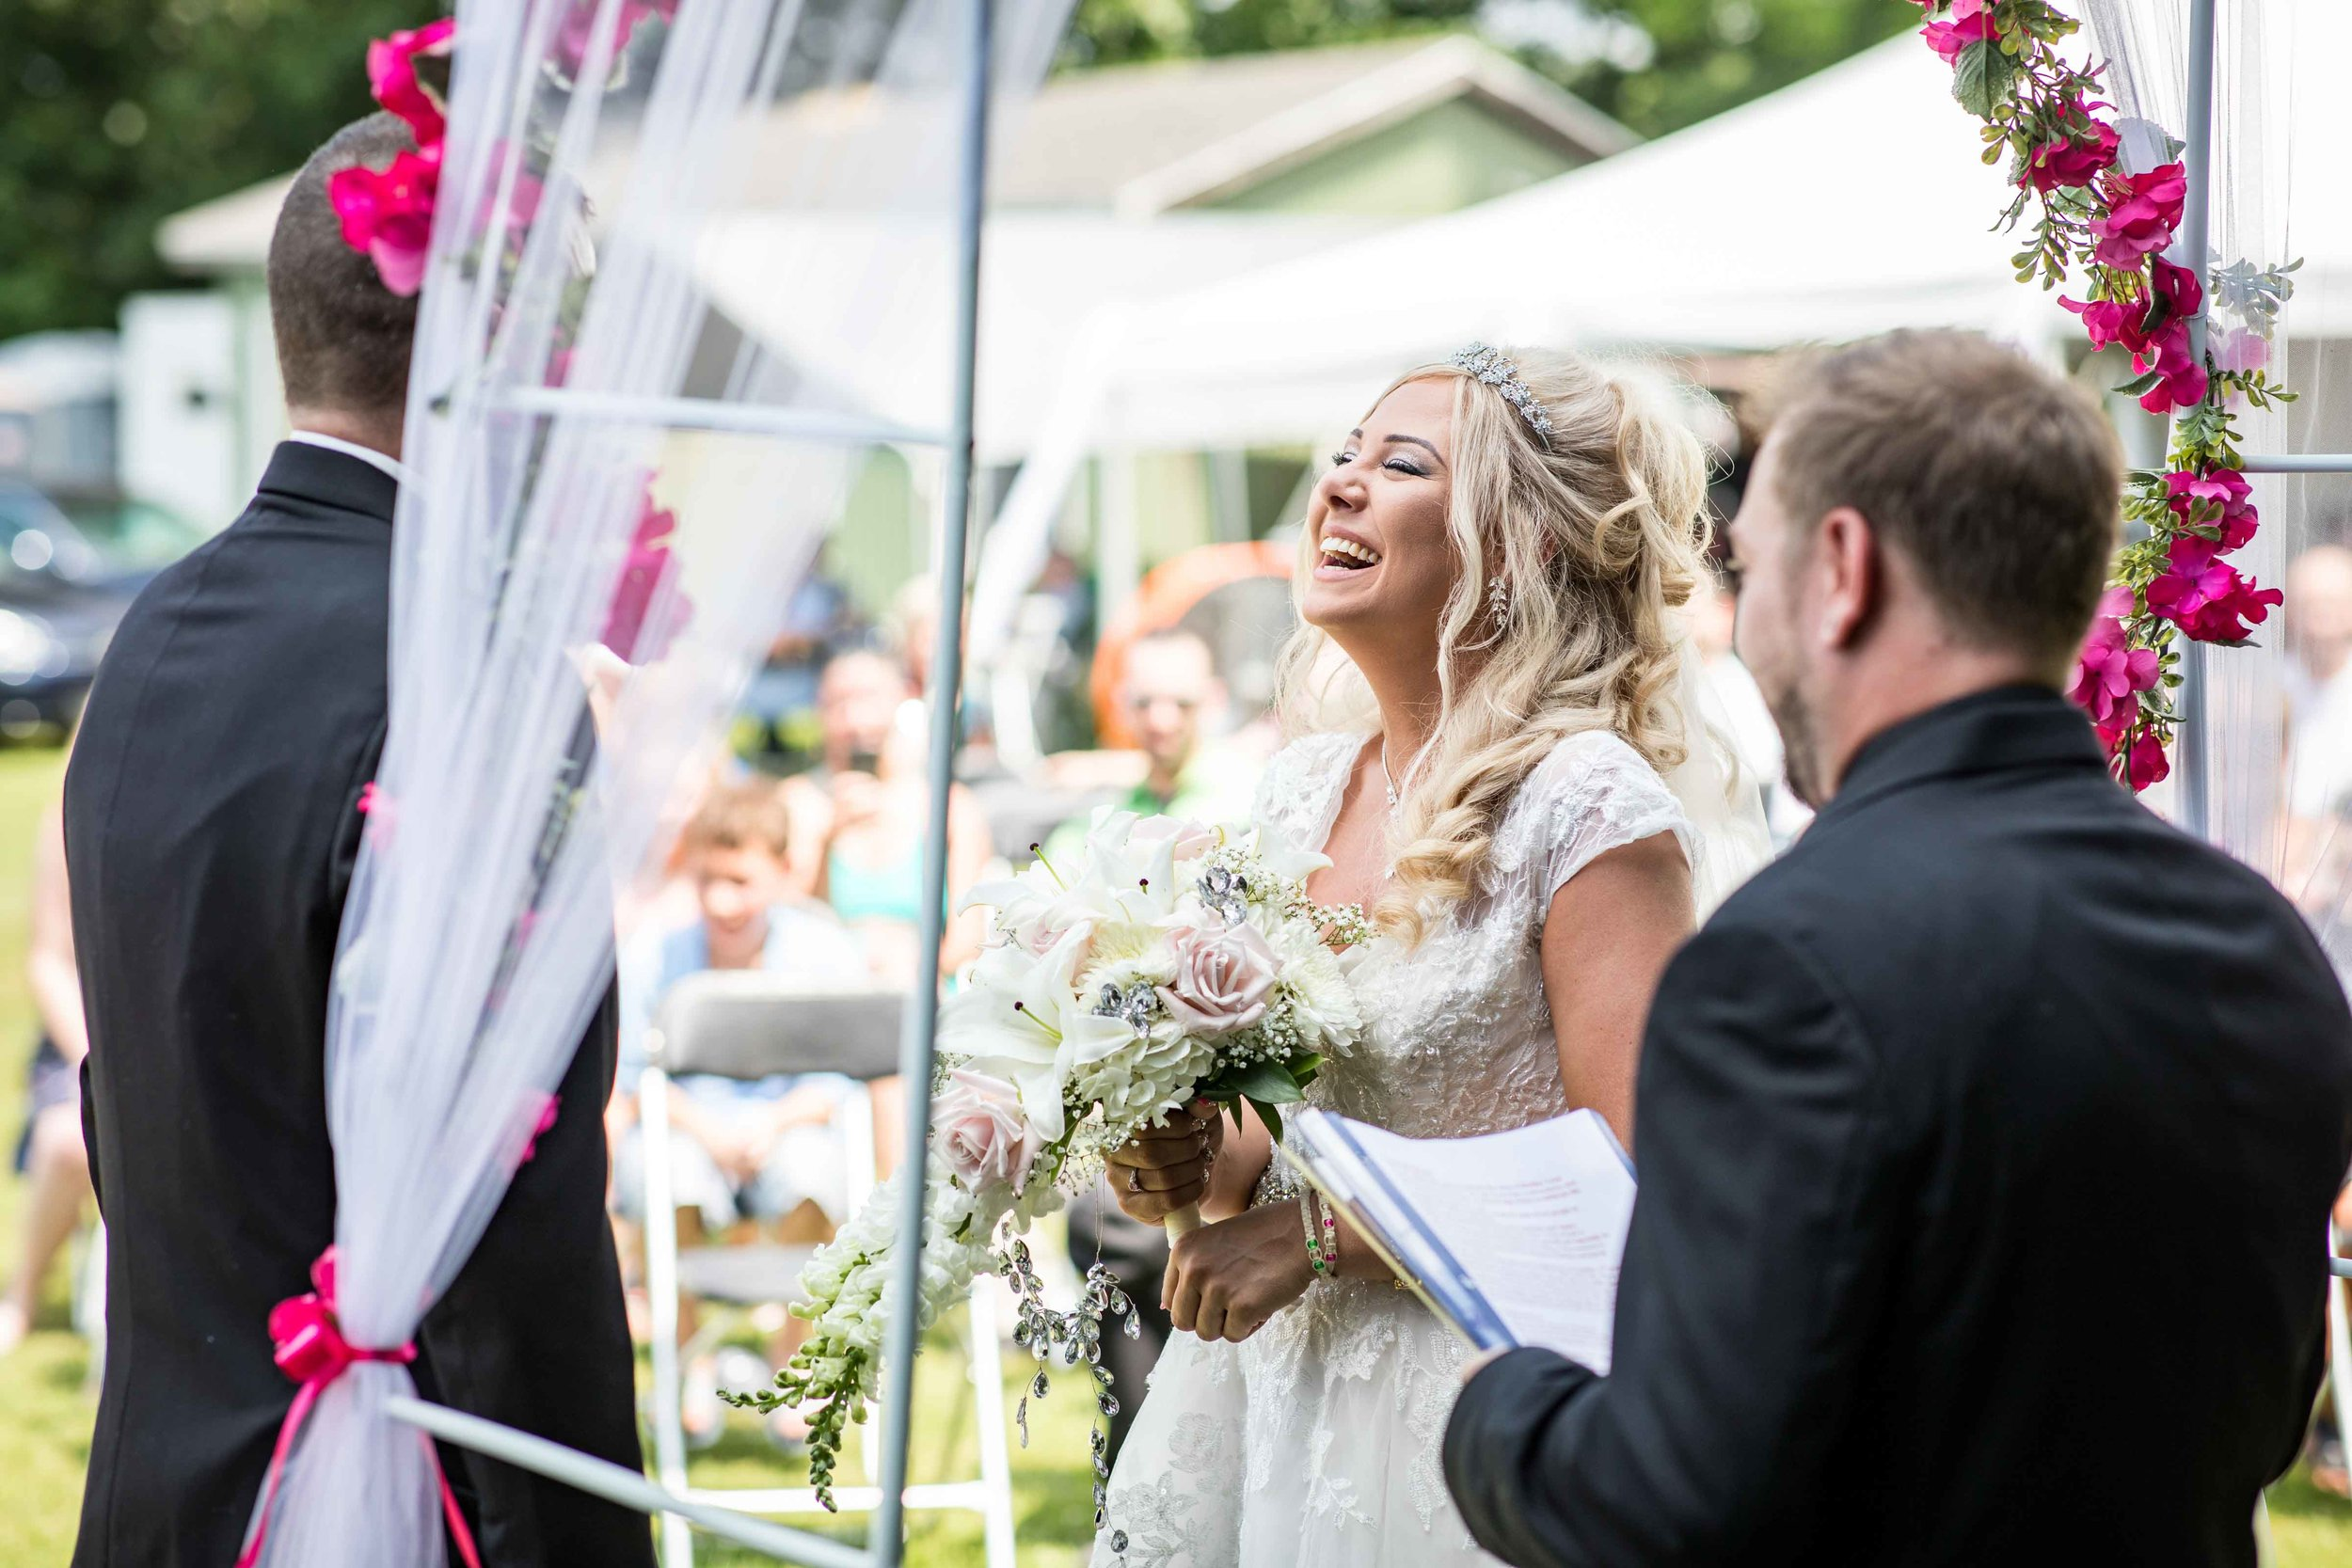 The bride laughs at a joke from the officiant